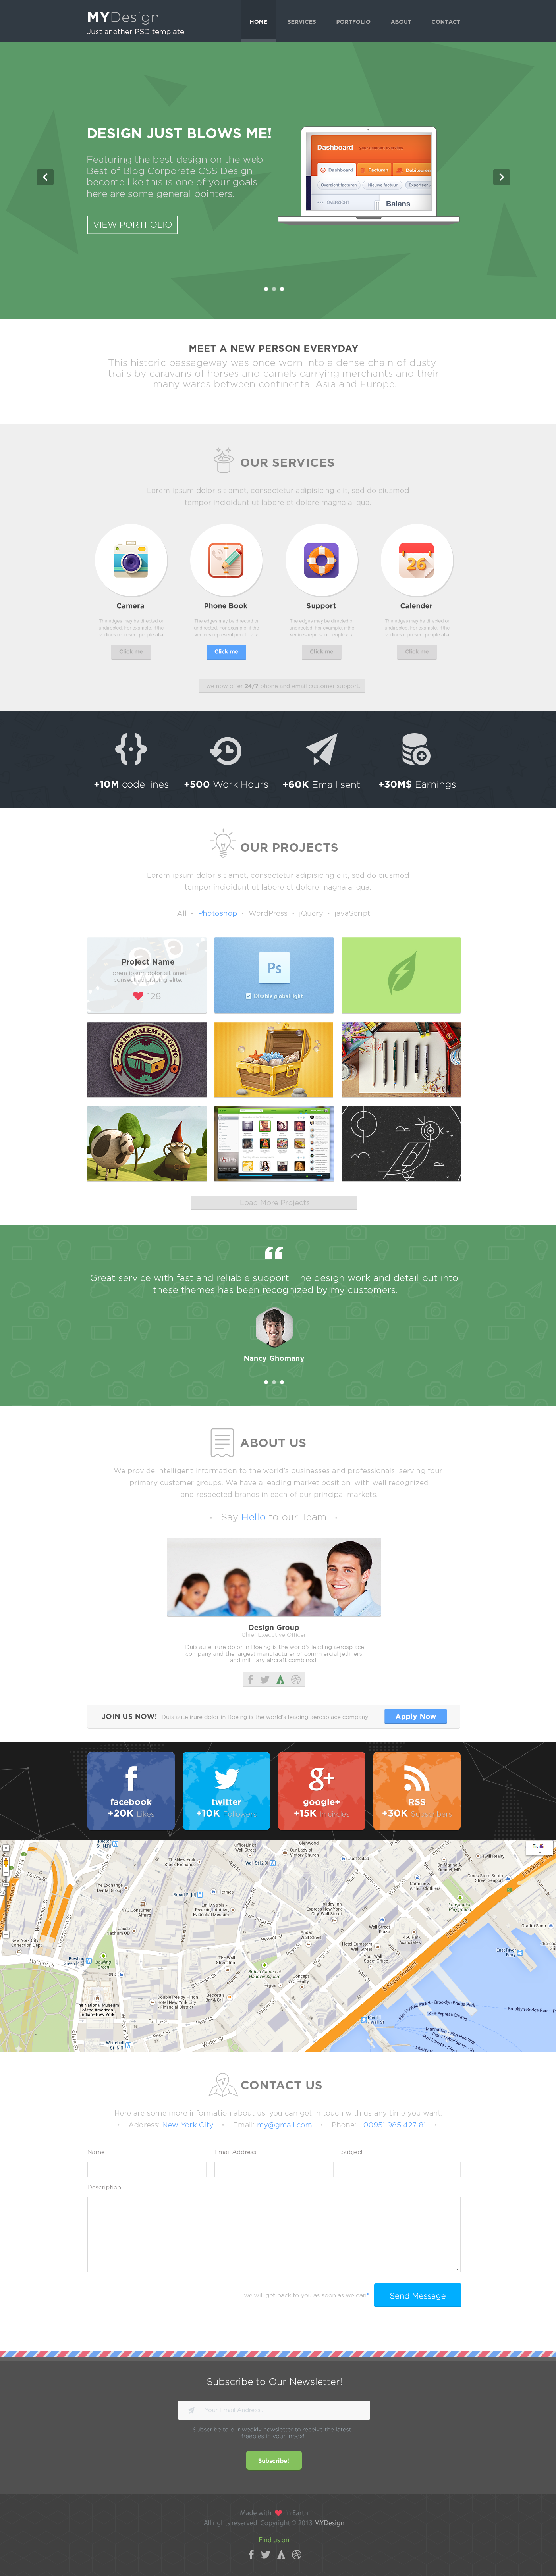 MYDesign - Onepage Multipurpose Flat PSD Template